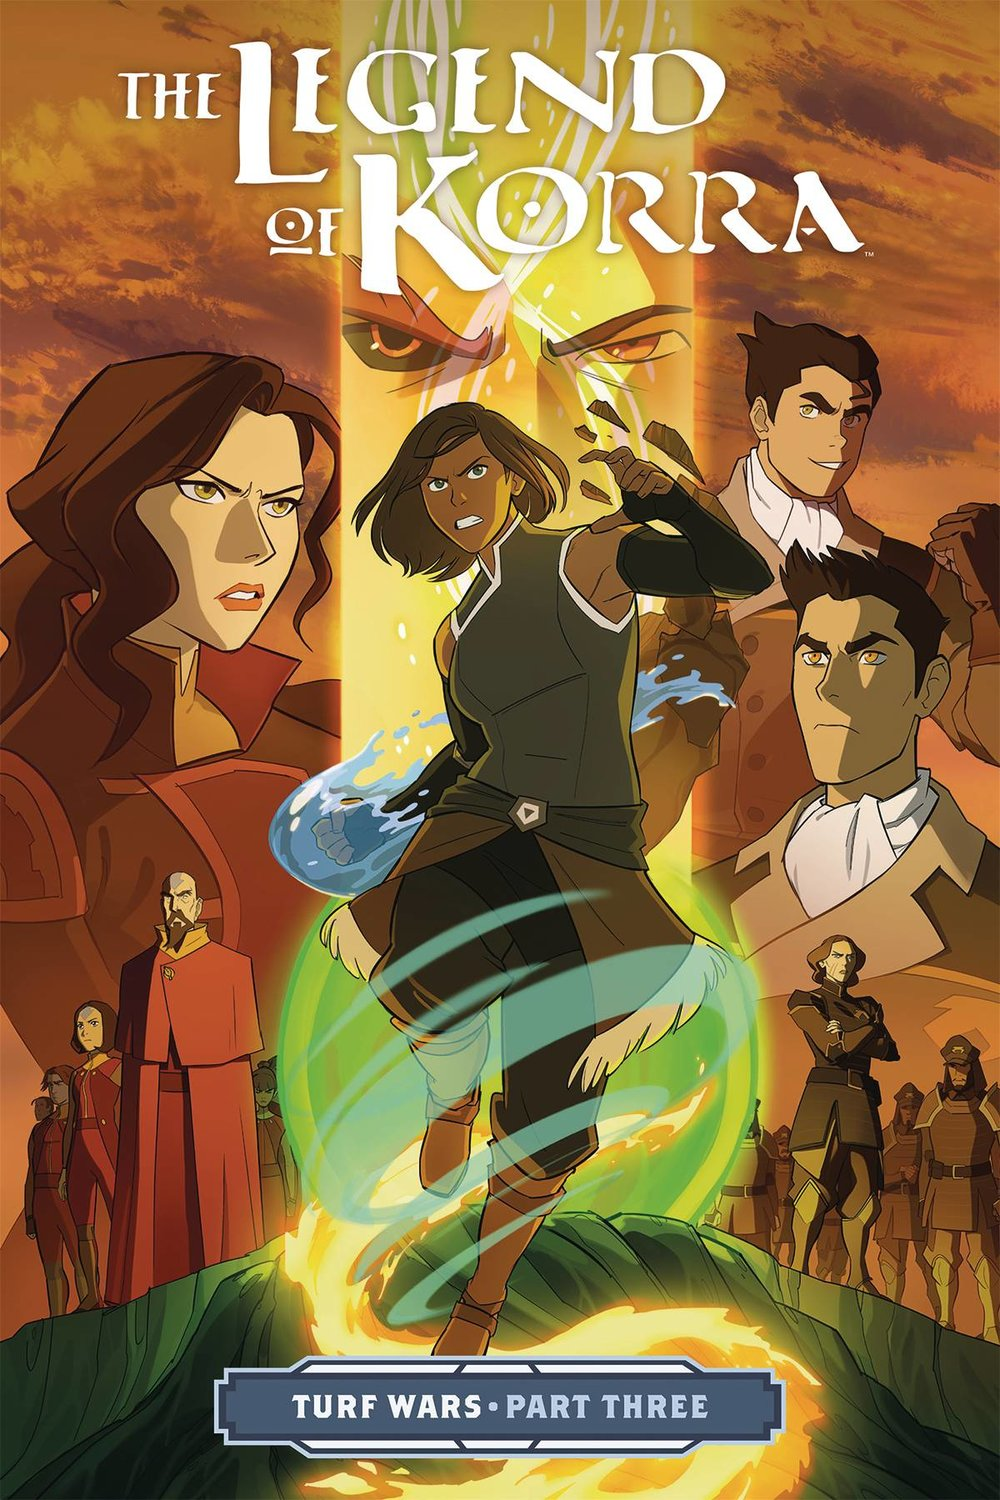 LEGEND OF KORRA TP VOL 03 TURF WARS PT 3